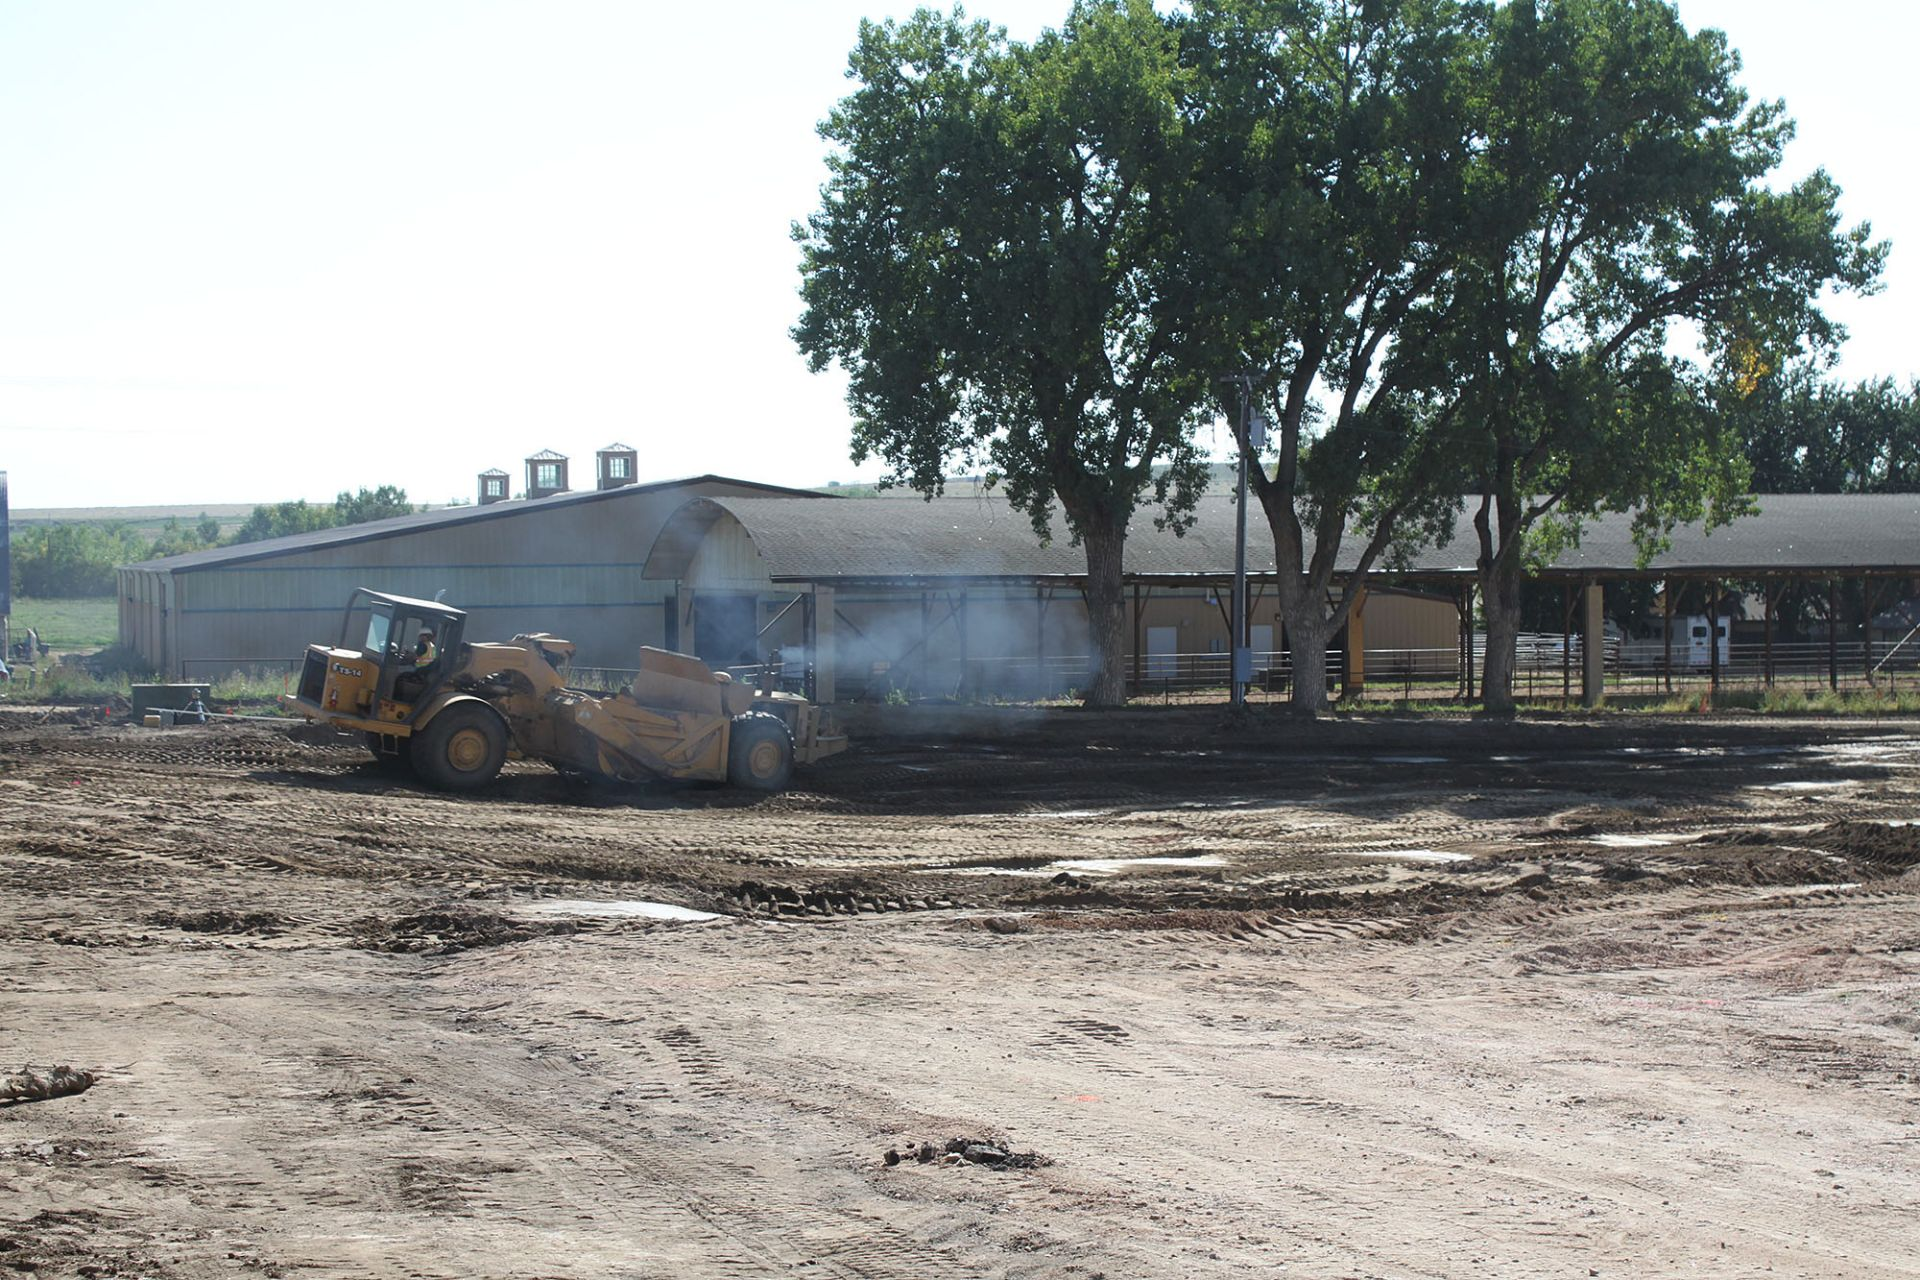 On the back road looking toward the covered arena ... it's empty now! This is where the Athletic Center will go.